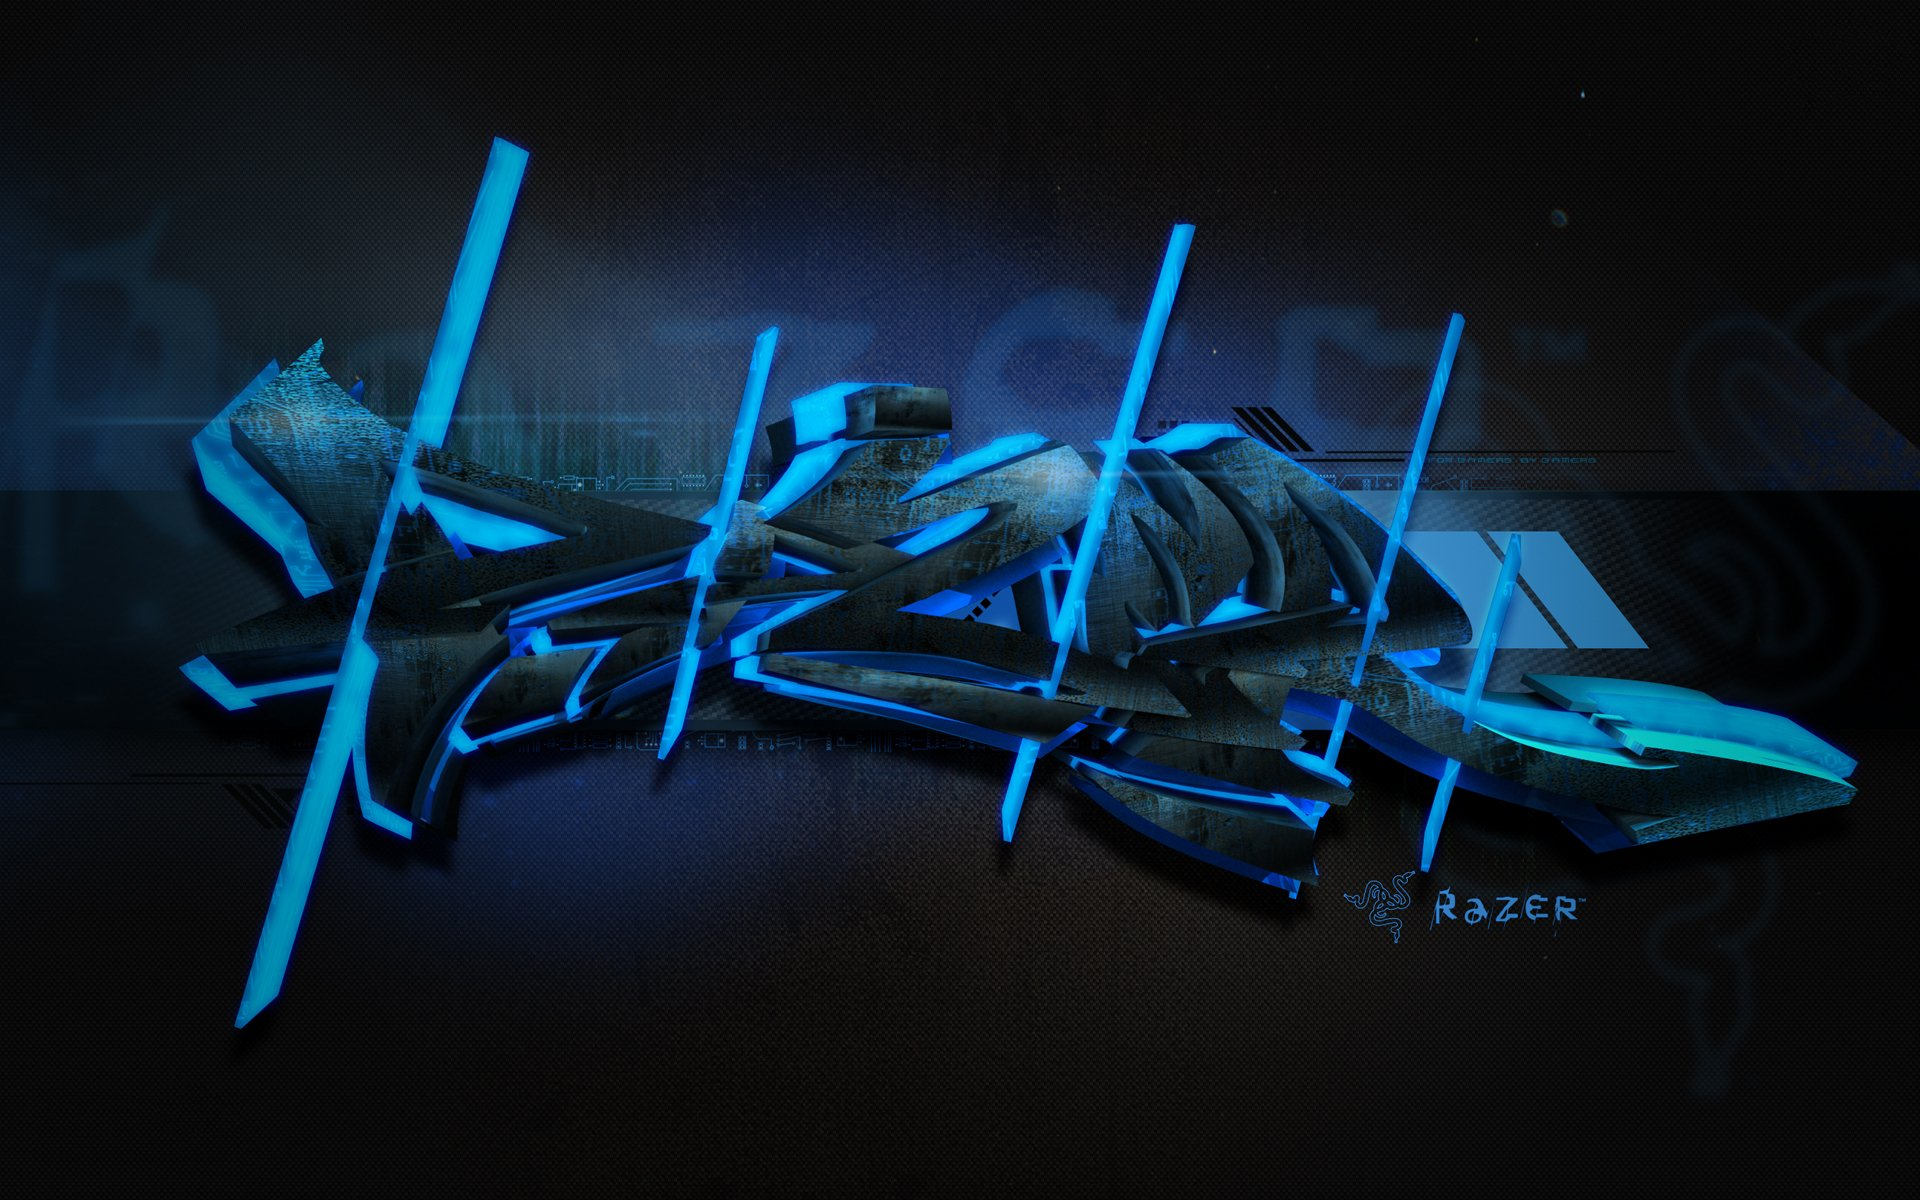 10 Most Popular Black And Blue Gaming Wallpaper Full Hd: Razer Blue Graffiti Wallpaper And Background Image